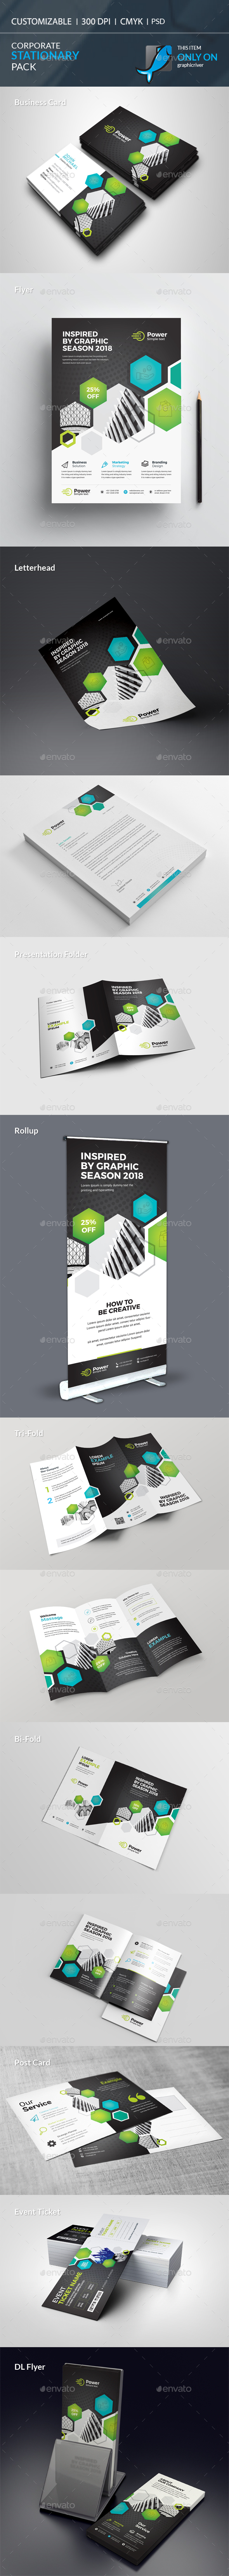 Corporate Stationary Pack - Stationery Print Templates